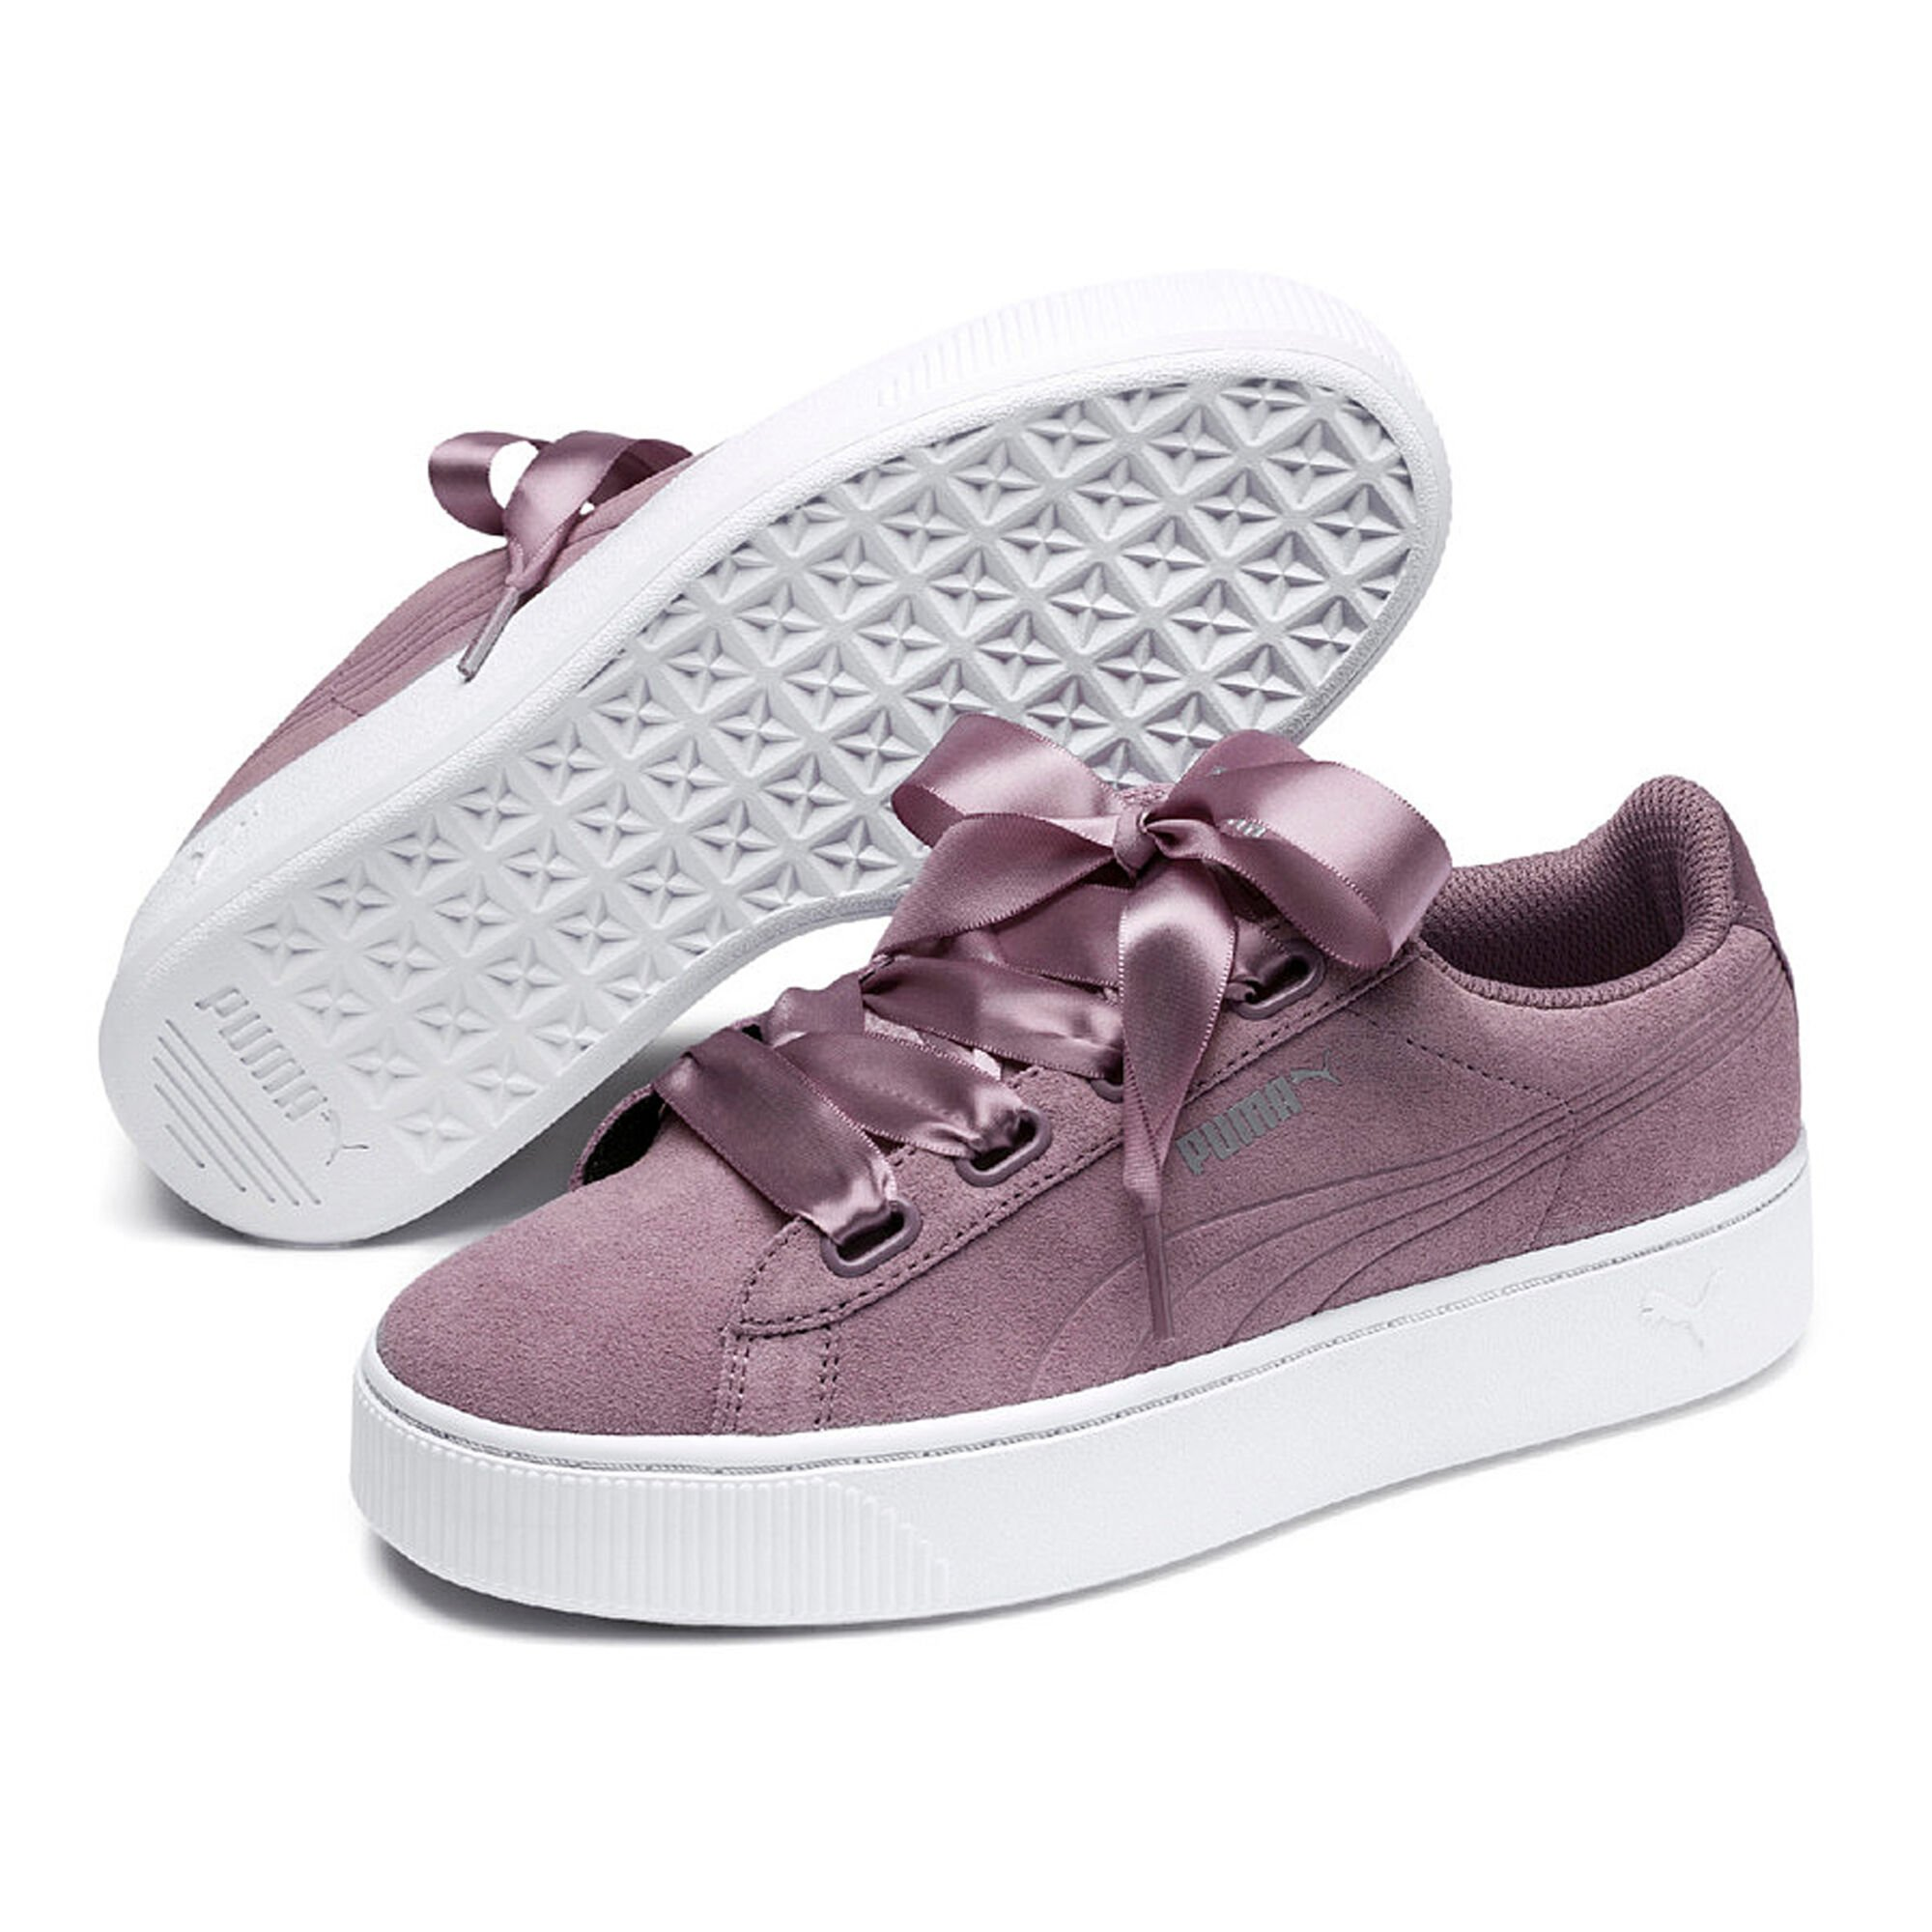 d017a4f80144 buy Puma Vikky Stacked Ribbon Sneakers Women - Violet